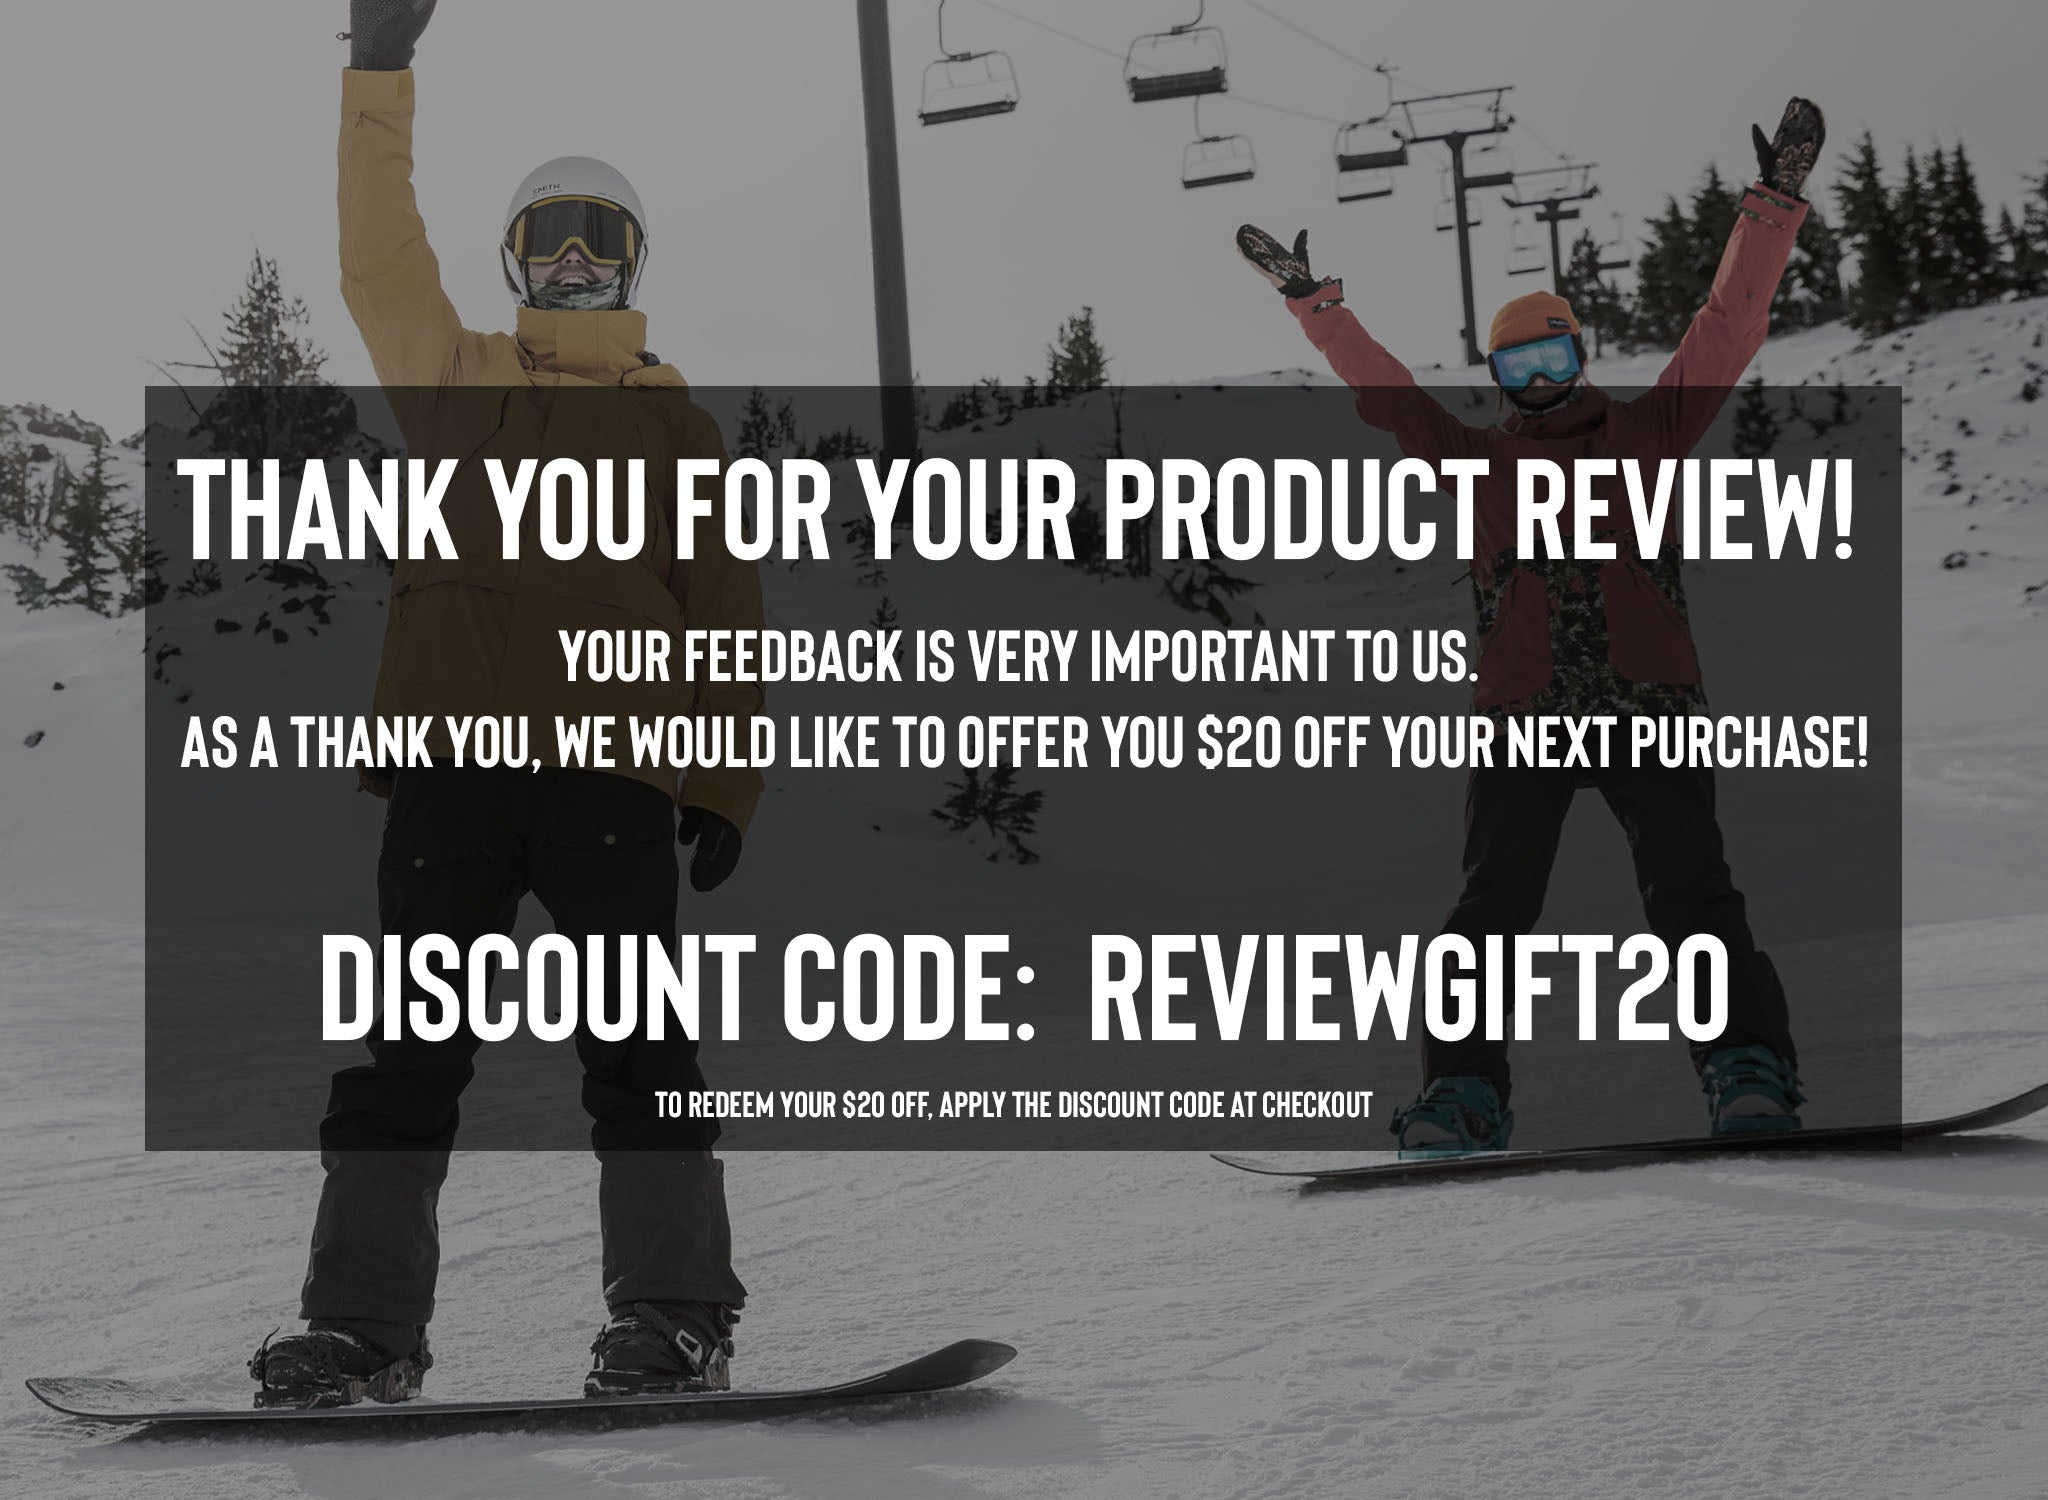 Thank you for your review. Receive $20 off with REVIEWGIFT20